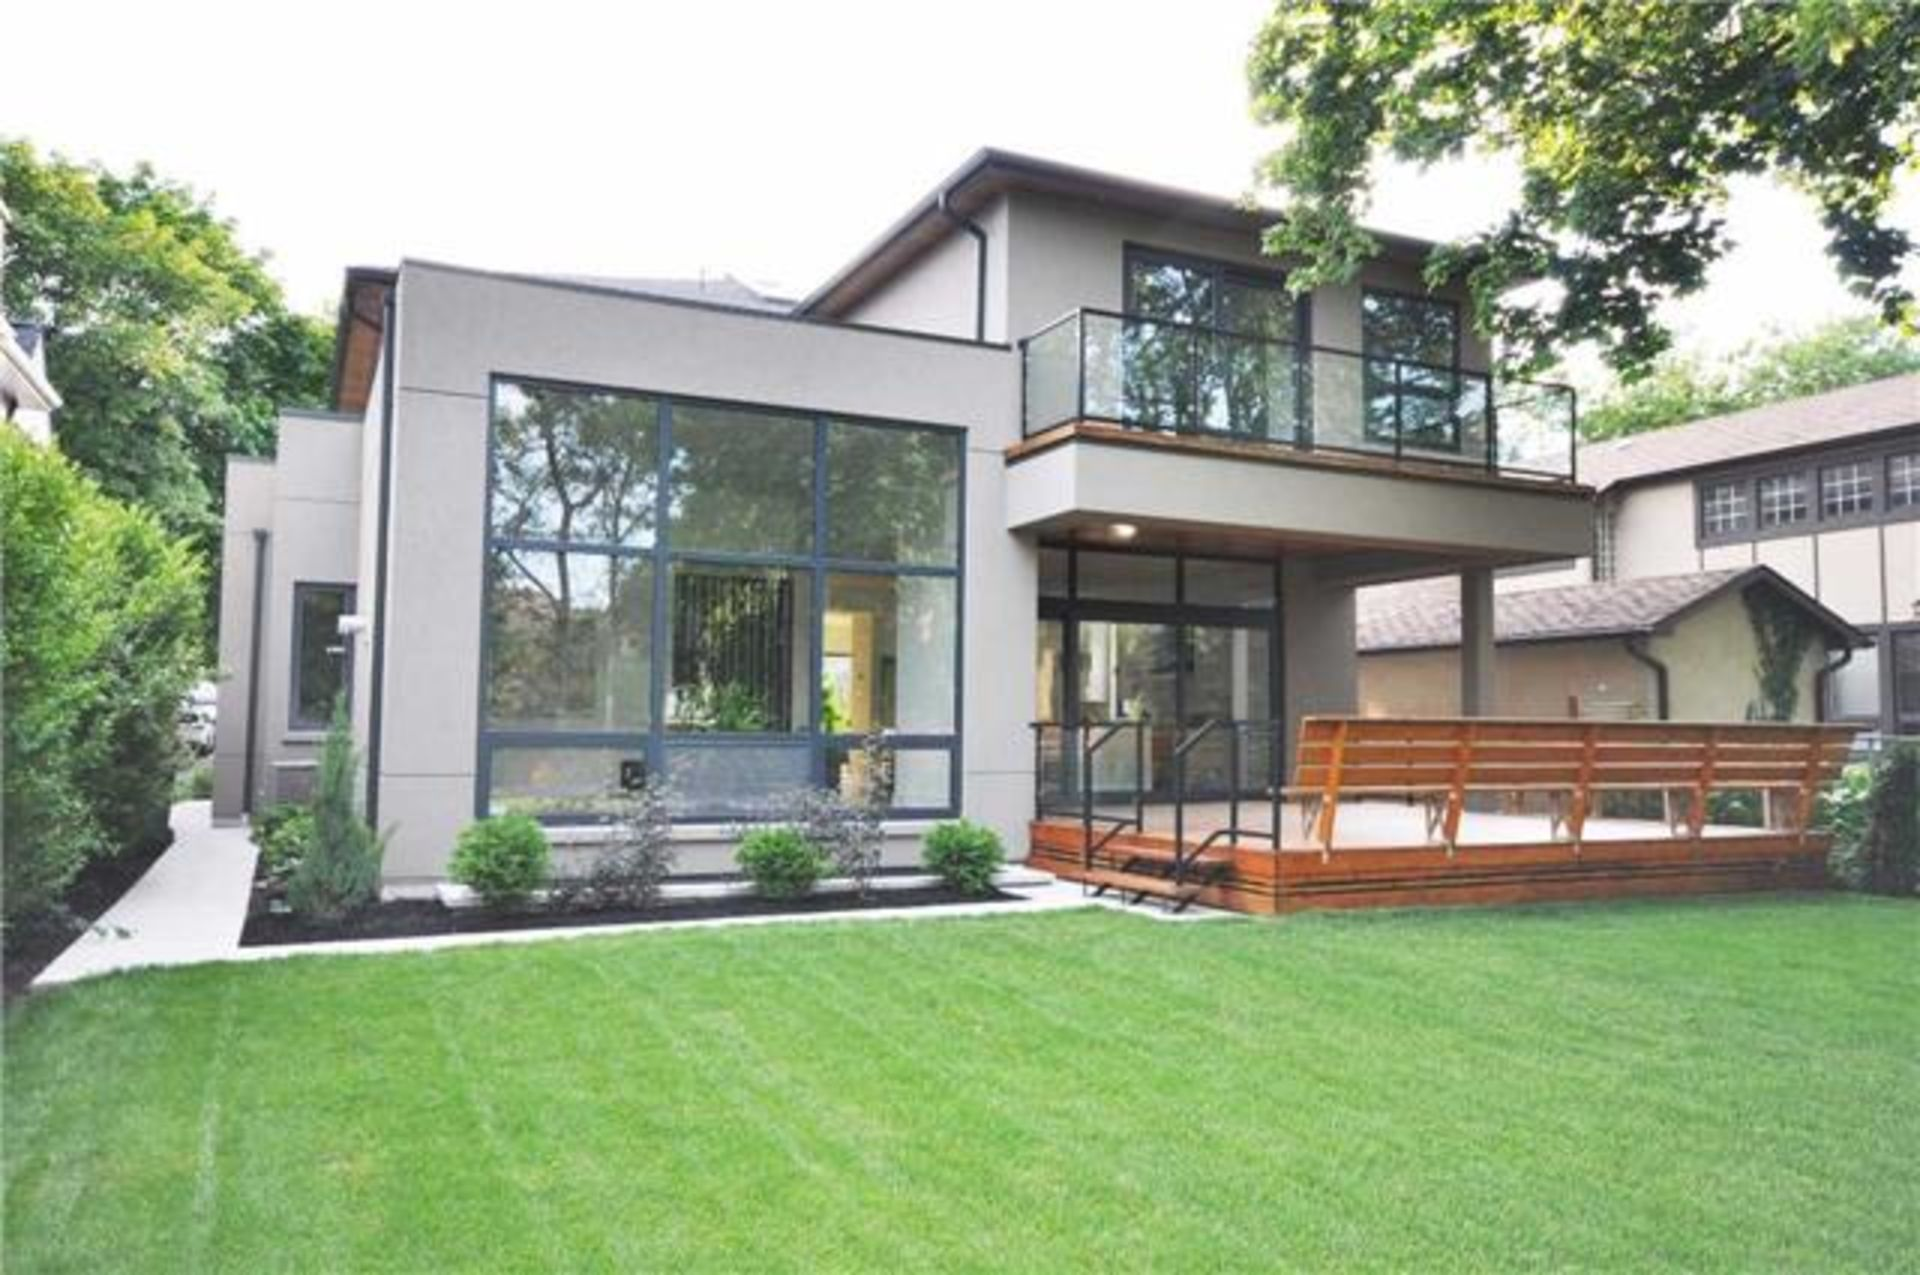 Home of the Month: Newly listed modern home in West end